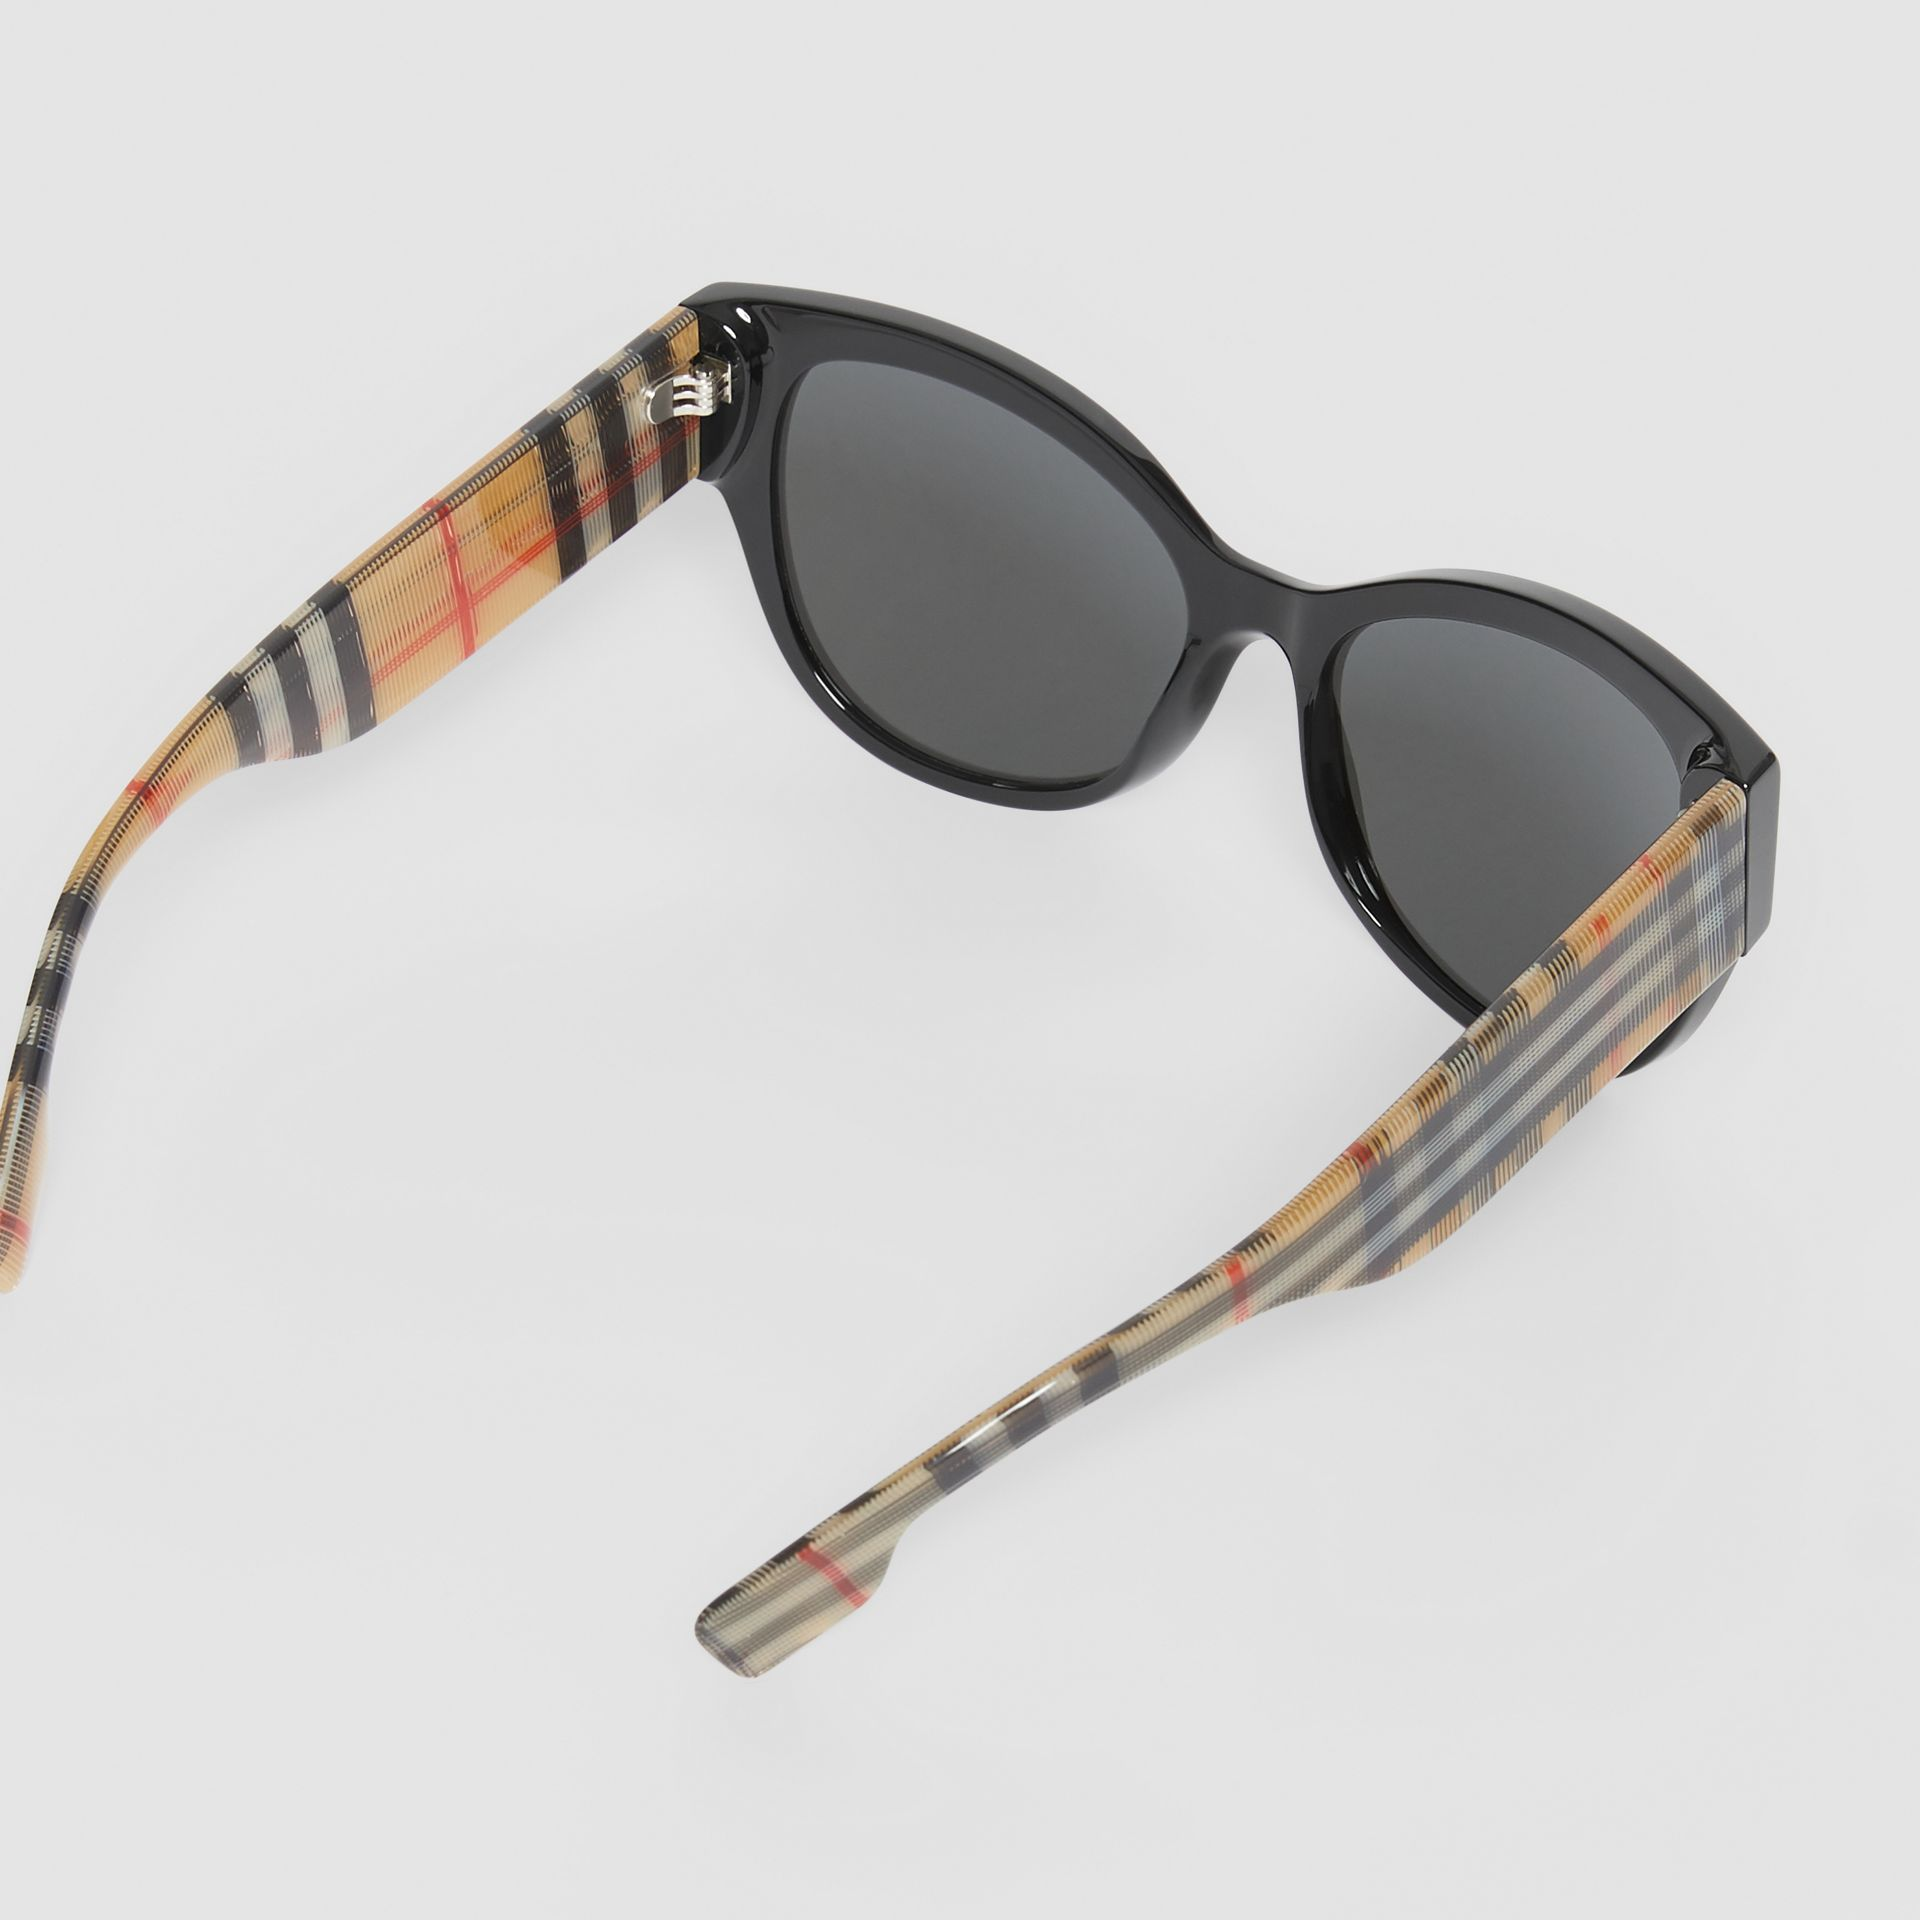 Vintage Check Detail Butterfly Frame Sunglasses in Black/beige - Women | Burberry - gallery image 4